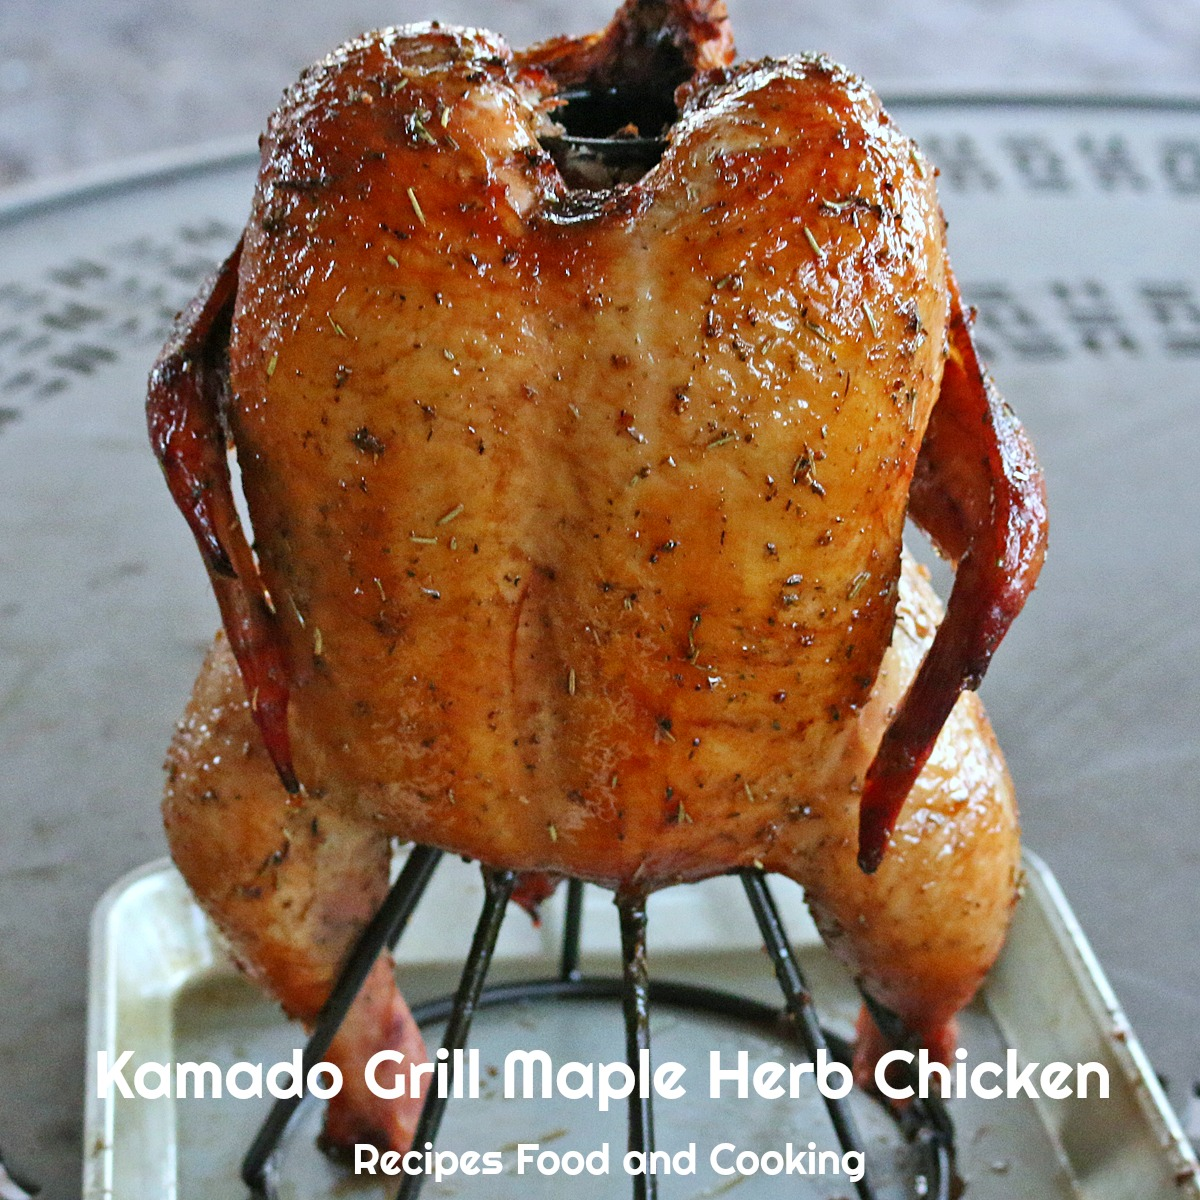 Kamado Grill Maple Herb Chicken